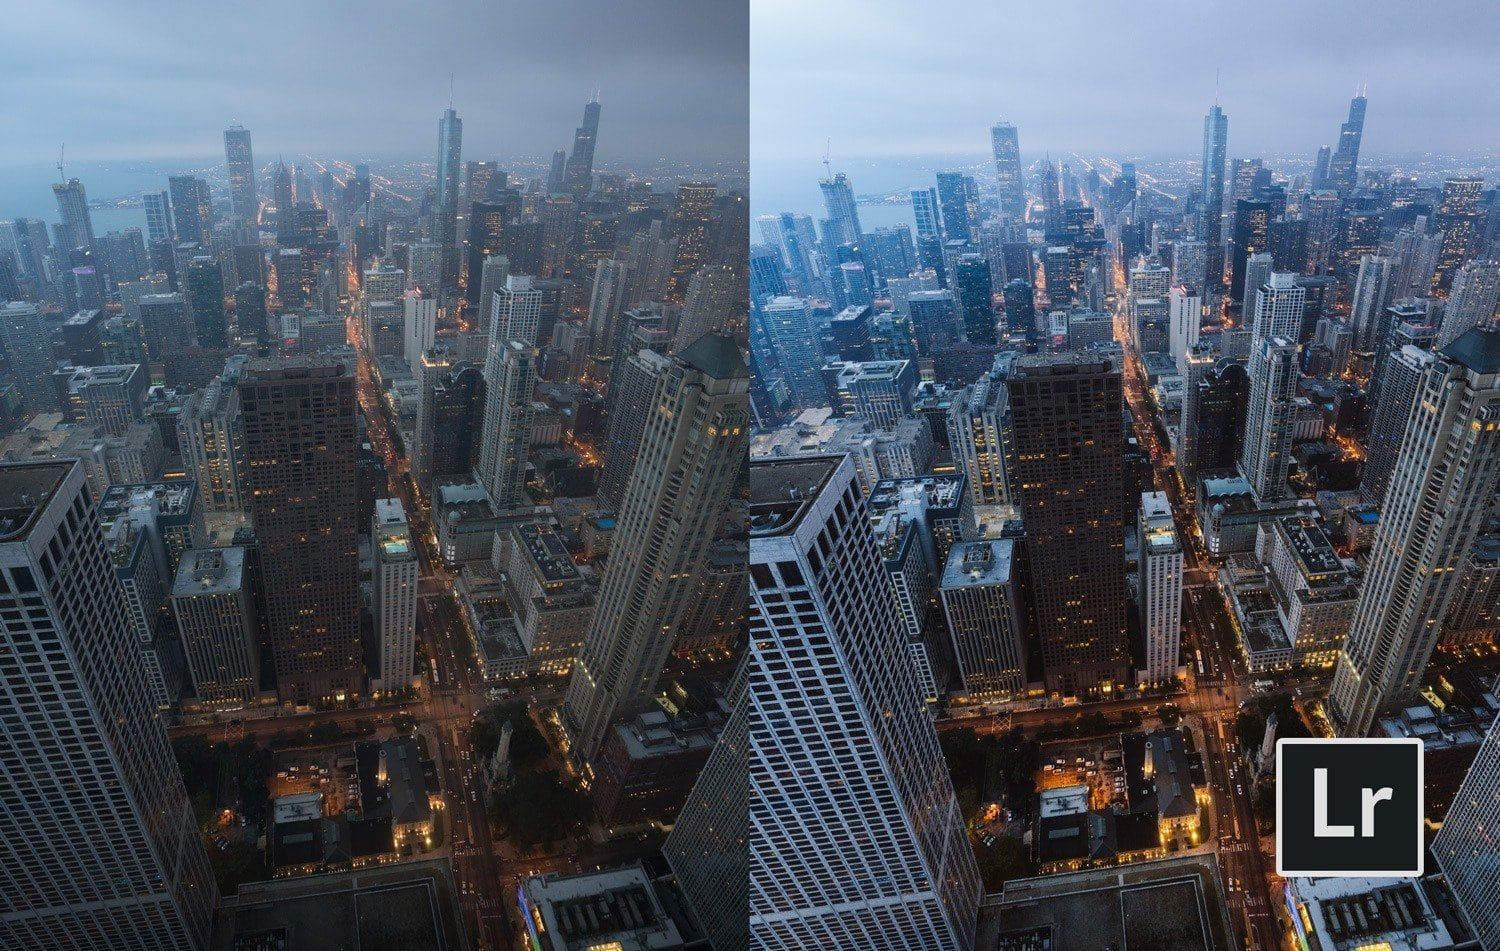 Free-Lightroom-Preset-Aerial-View-Before-ana-After-Presetpro.com